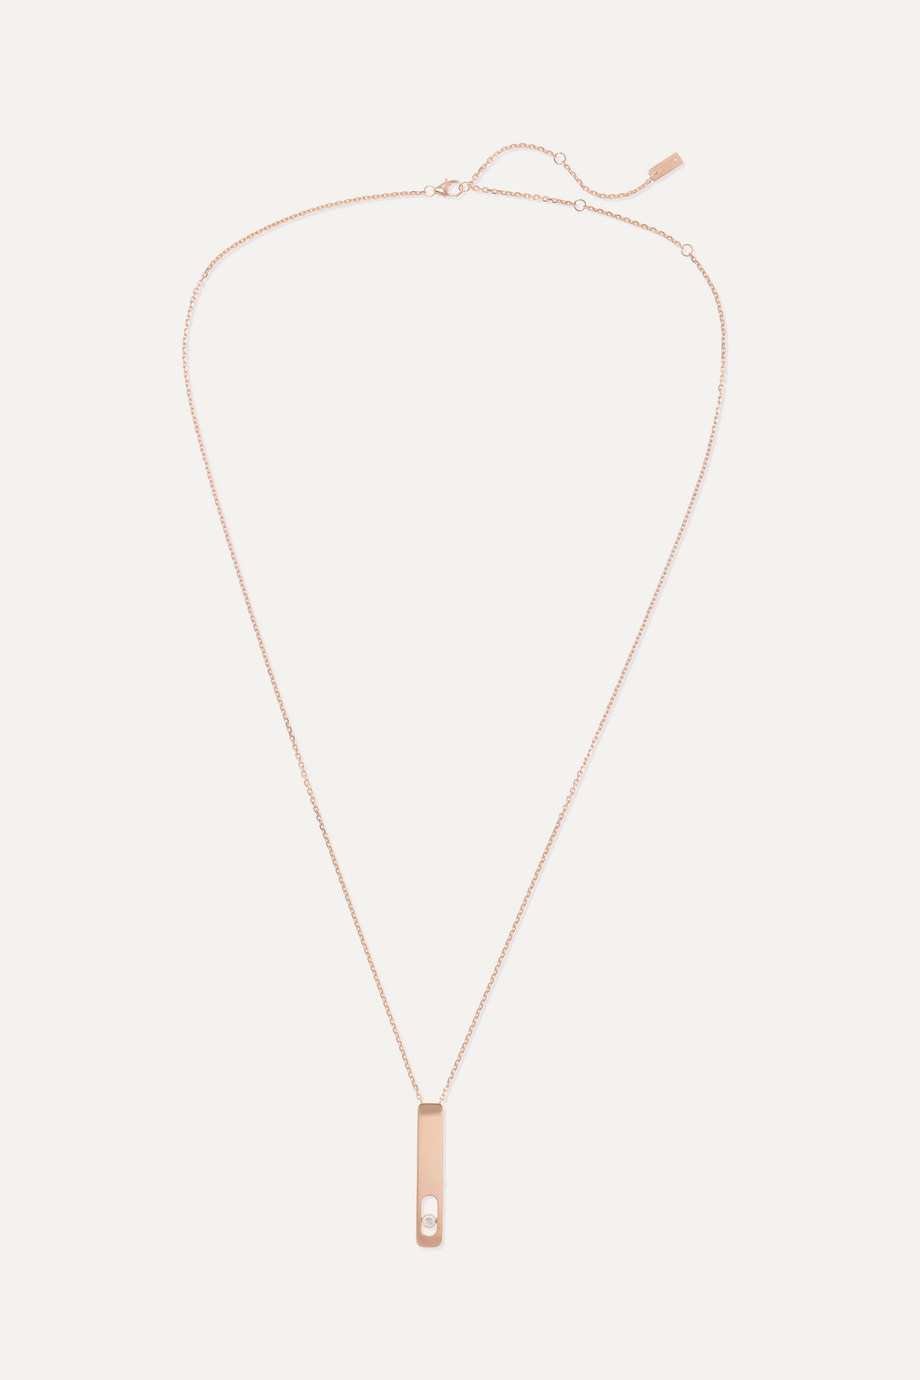 MESSIKA My First Diamond 18-karat rose gold diamond necklace